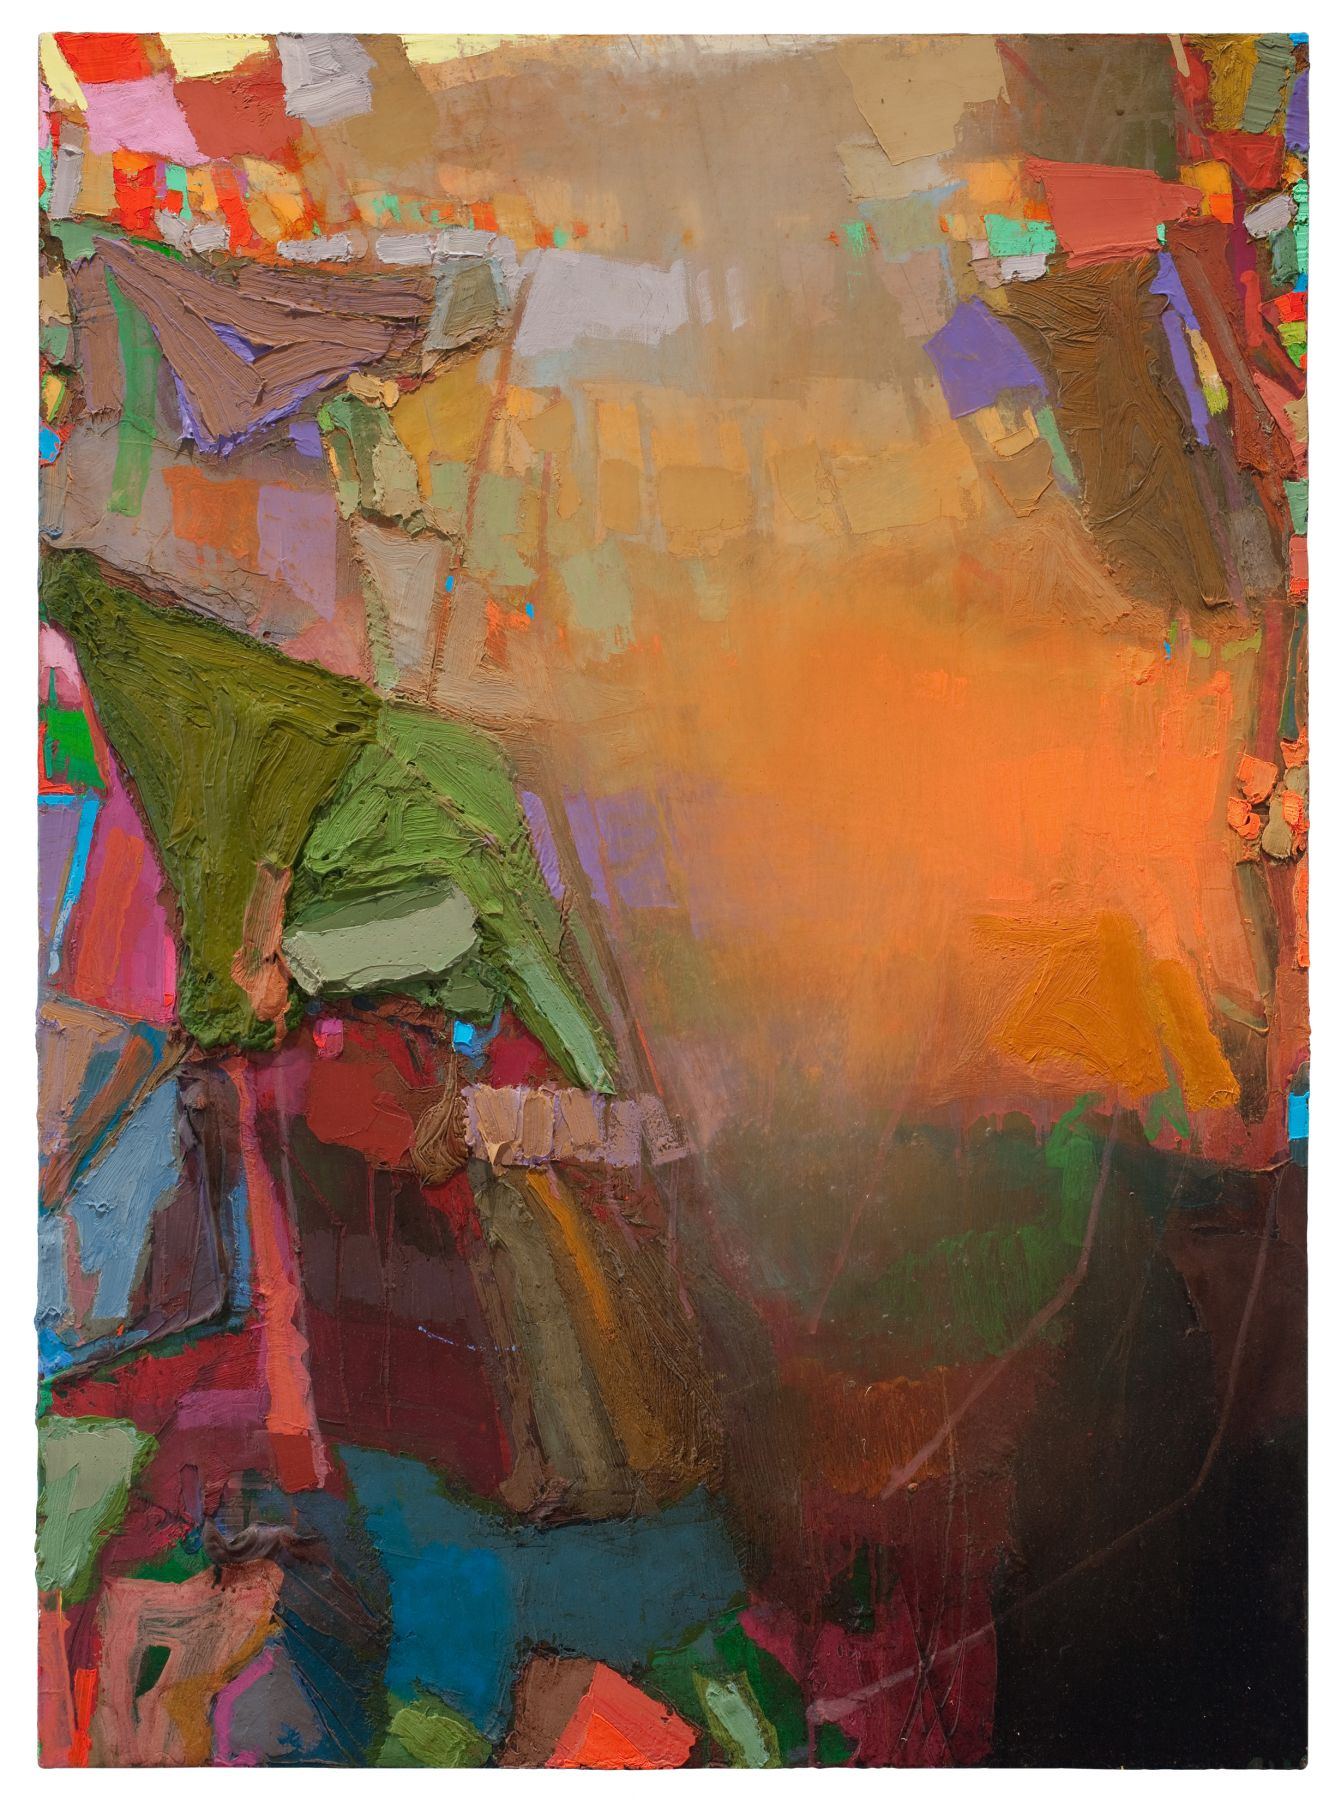 Brian Rutenberg, Tidesong 16, 2009-10 oil on linen 38 x 28 inches